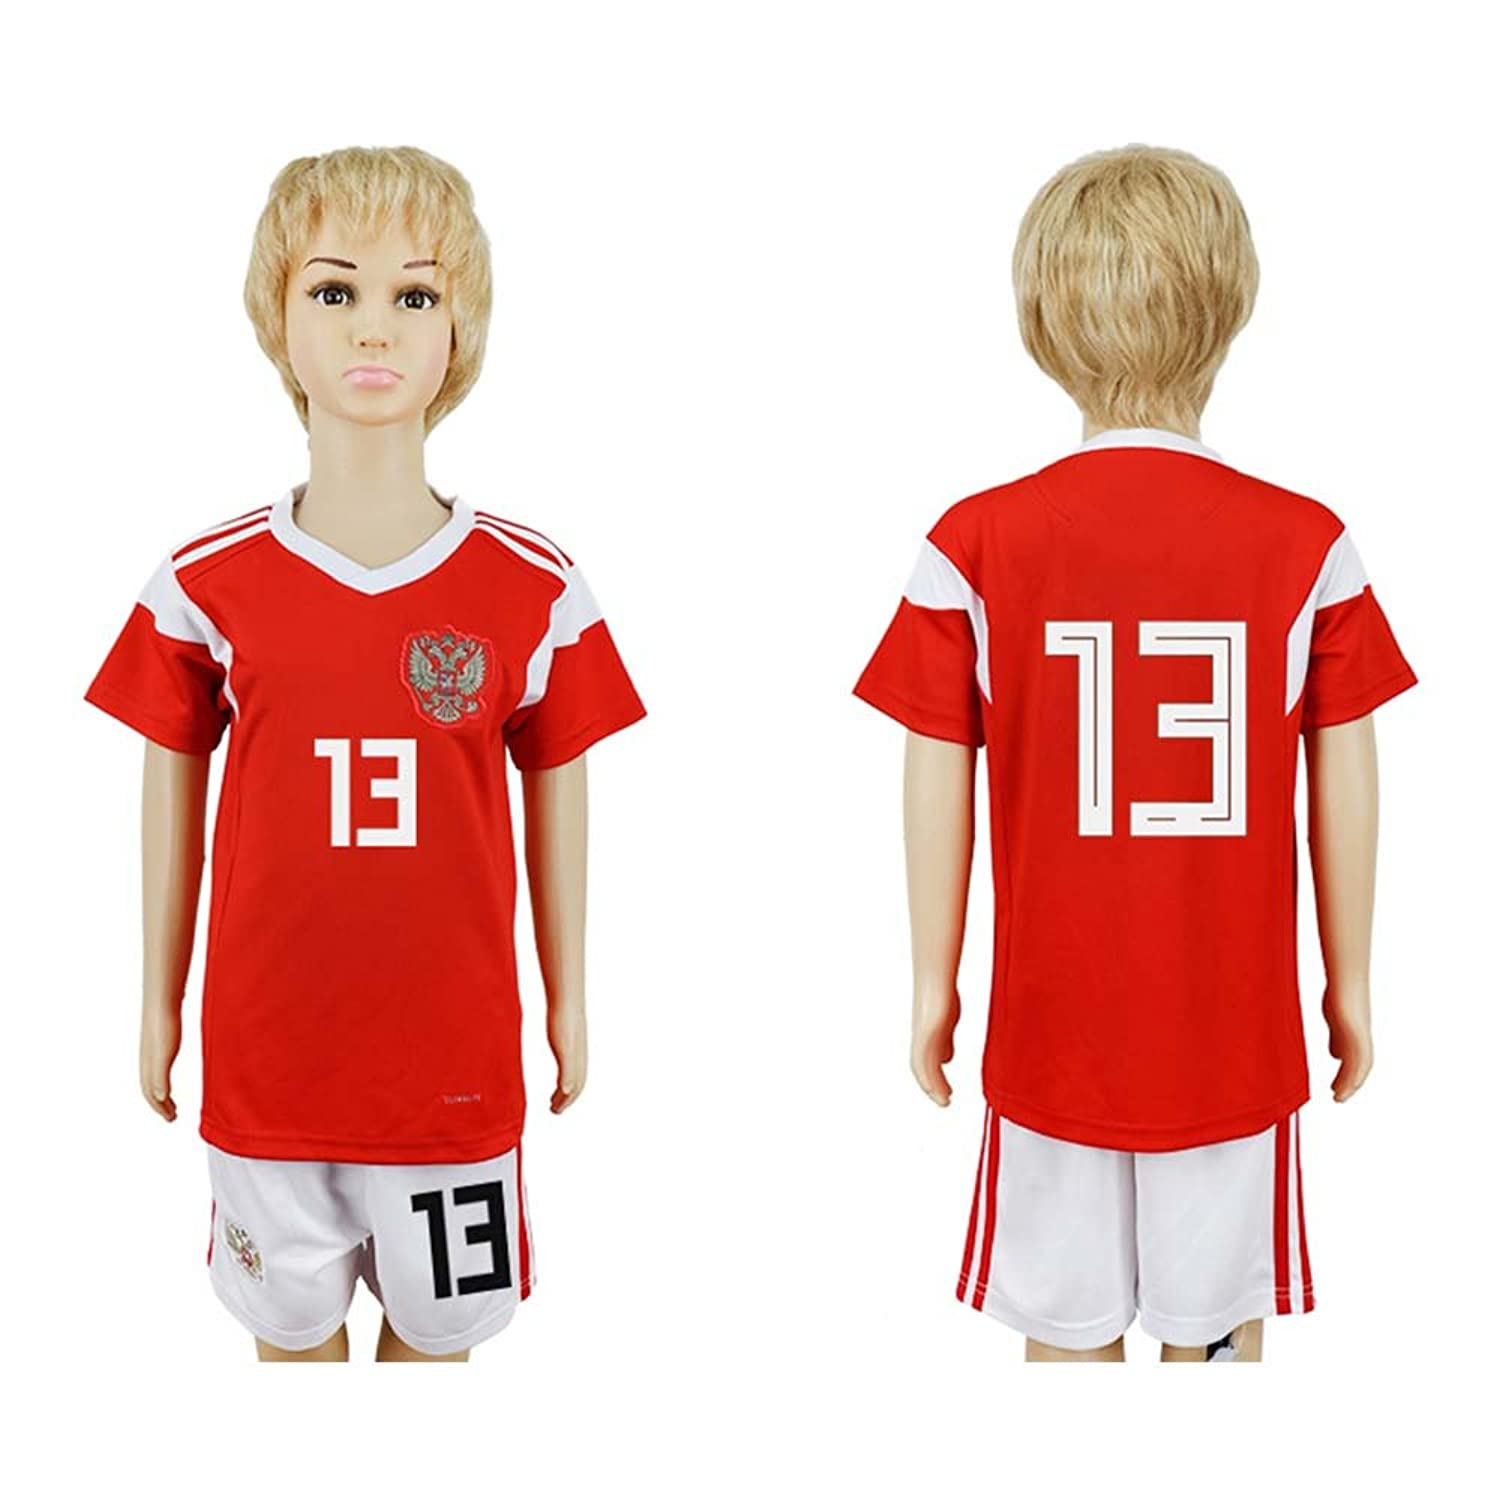 Puizozi SHIRT ボーイズ B07D3LJF1J24# (8 to 9 Years Old)